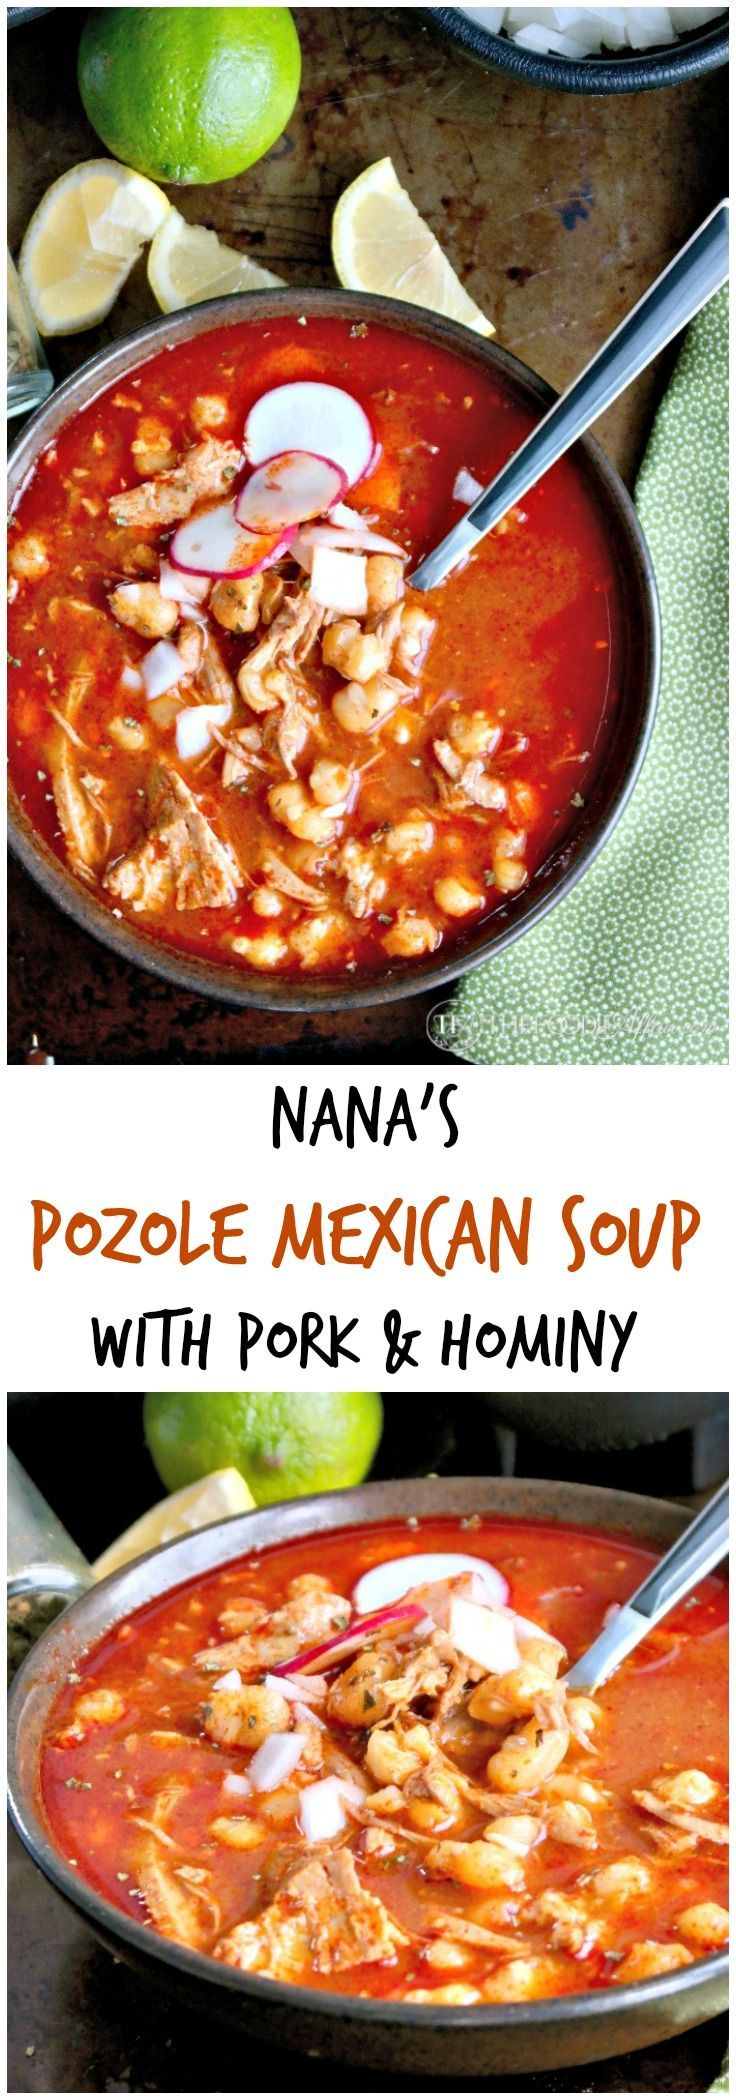 Nana's Pozole Mexican Soup #posole #soup #Mexican | http://thefoodieaffair.com